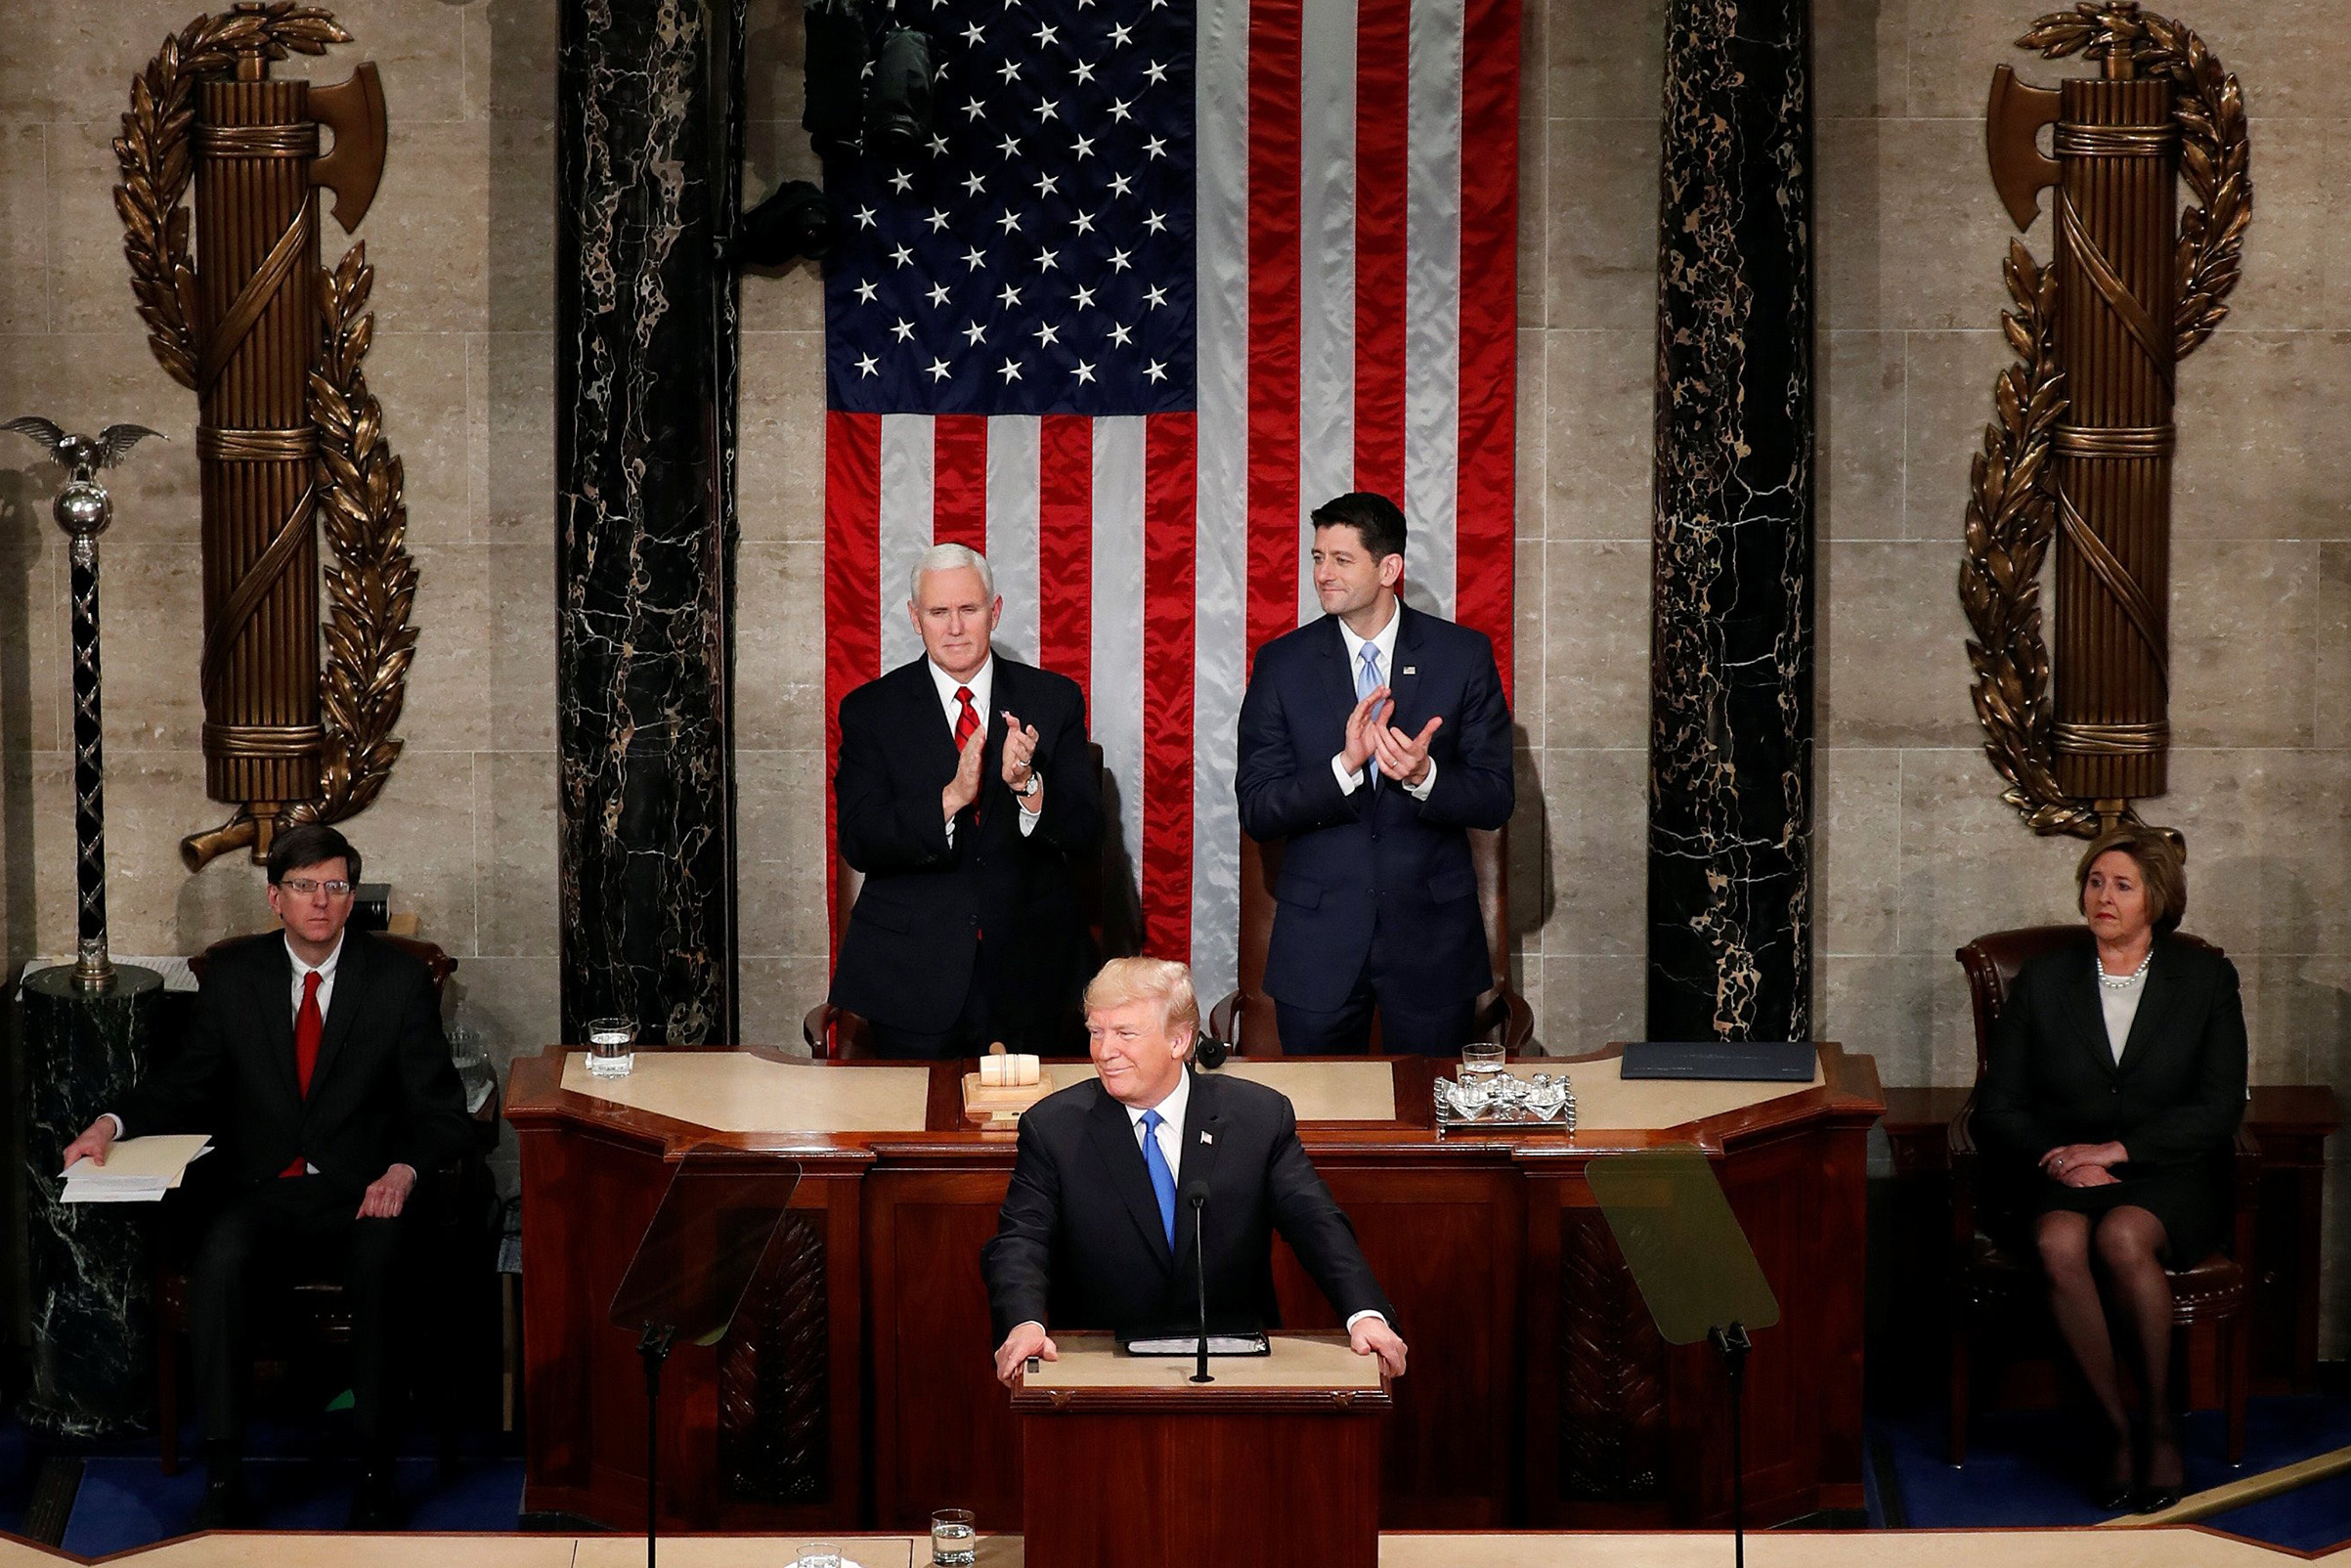 U.S. President Donald Trump delivers his first State of the Union address to a joint session of Congress